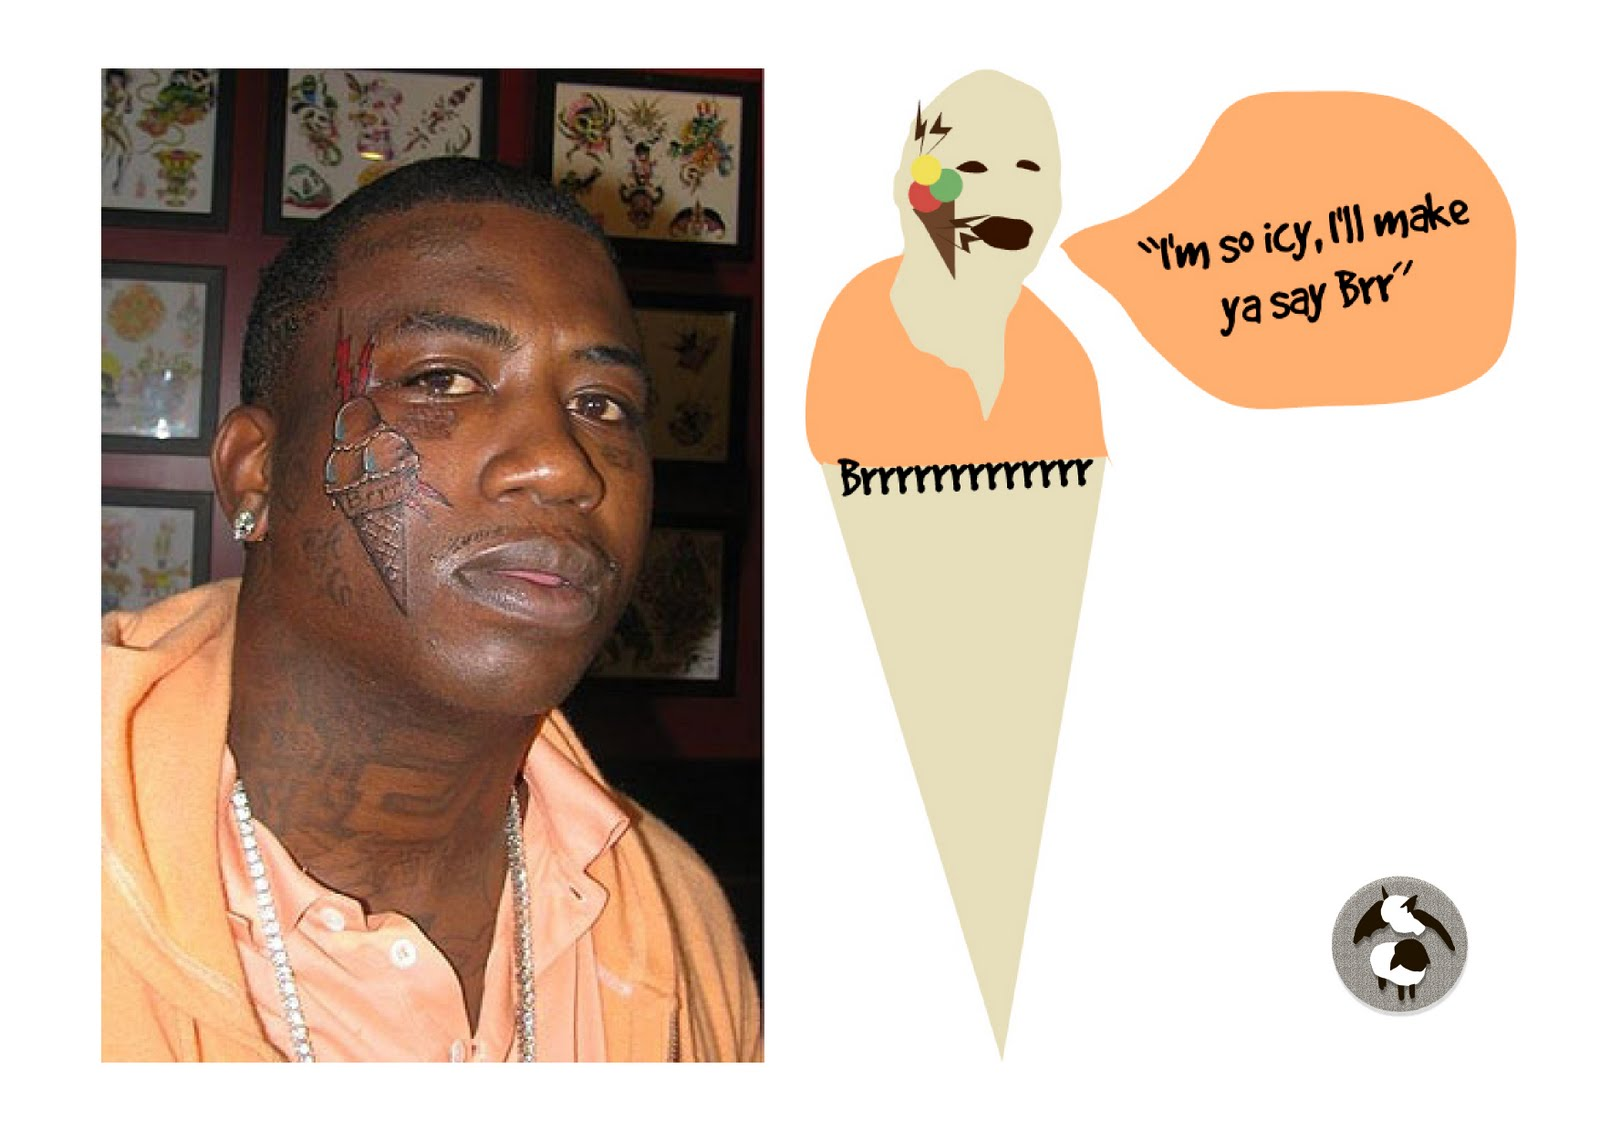 Gucci mane face cake ideas and designs for Gucci mane ice cream tattoo shirt